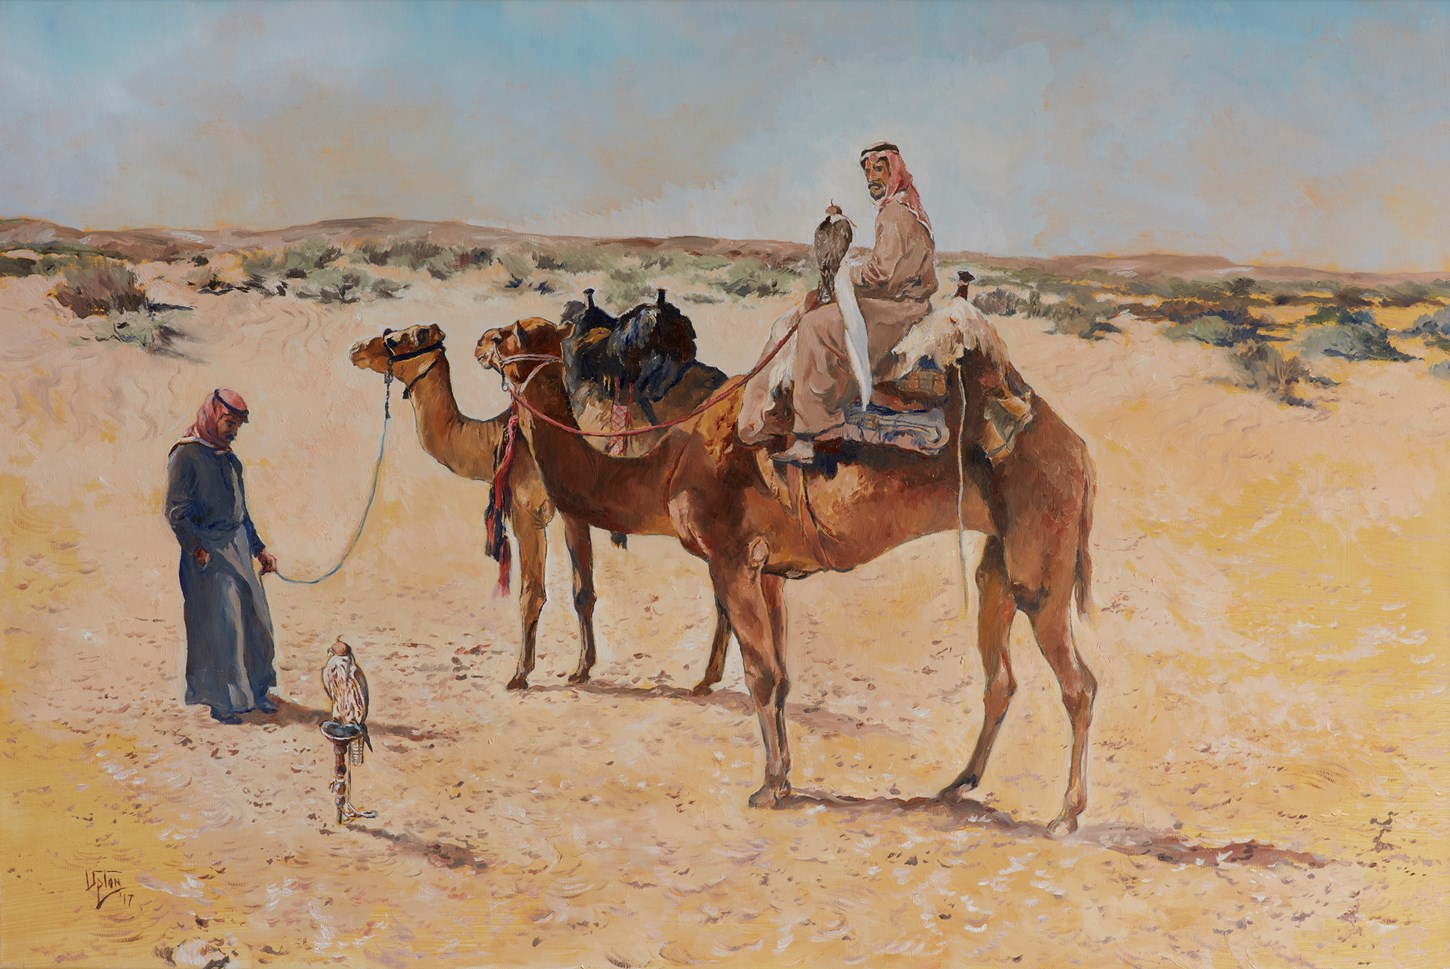 The Hunters - Camels, Bedouin and Falcons